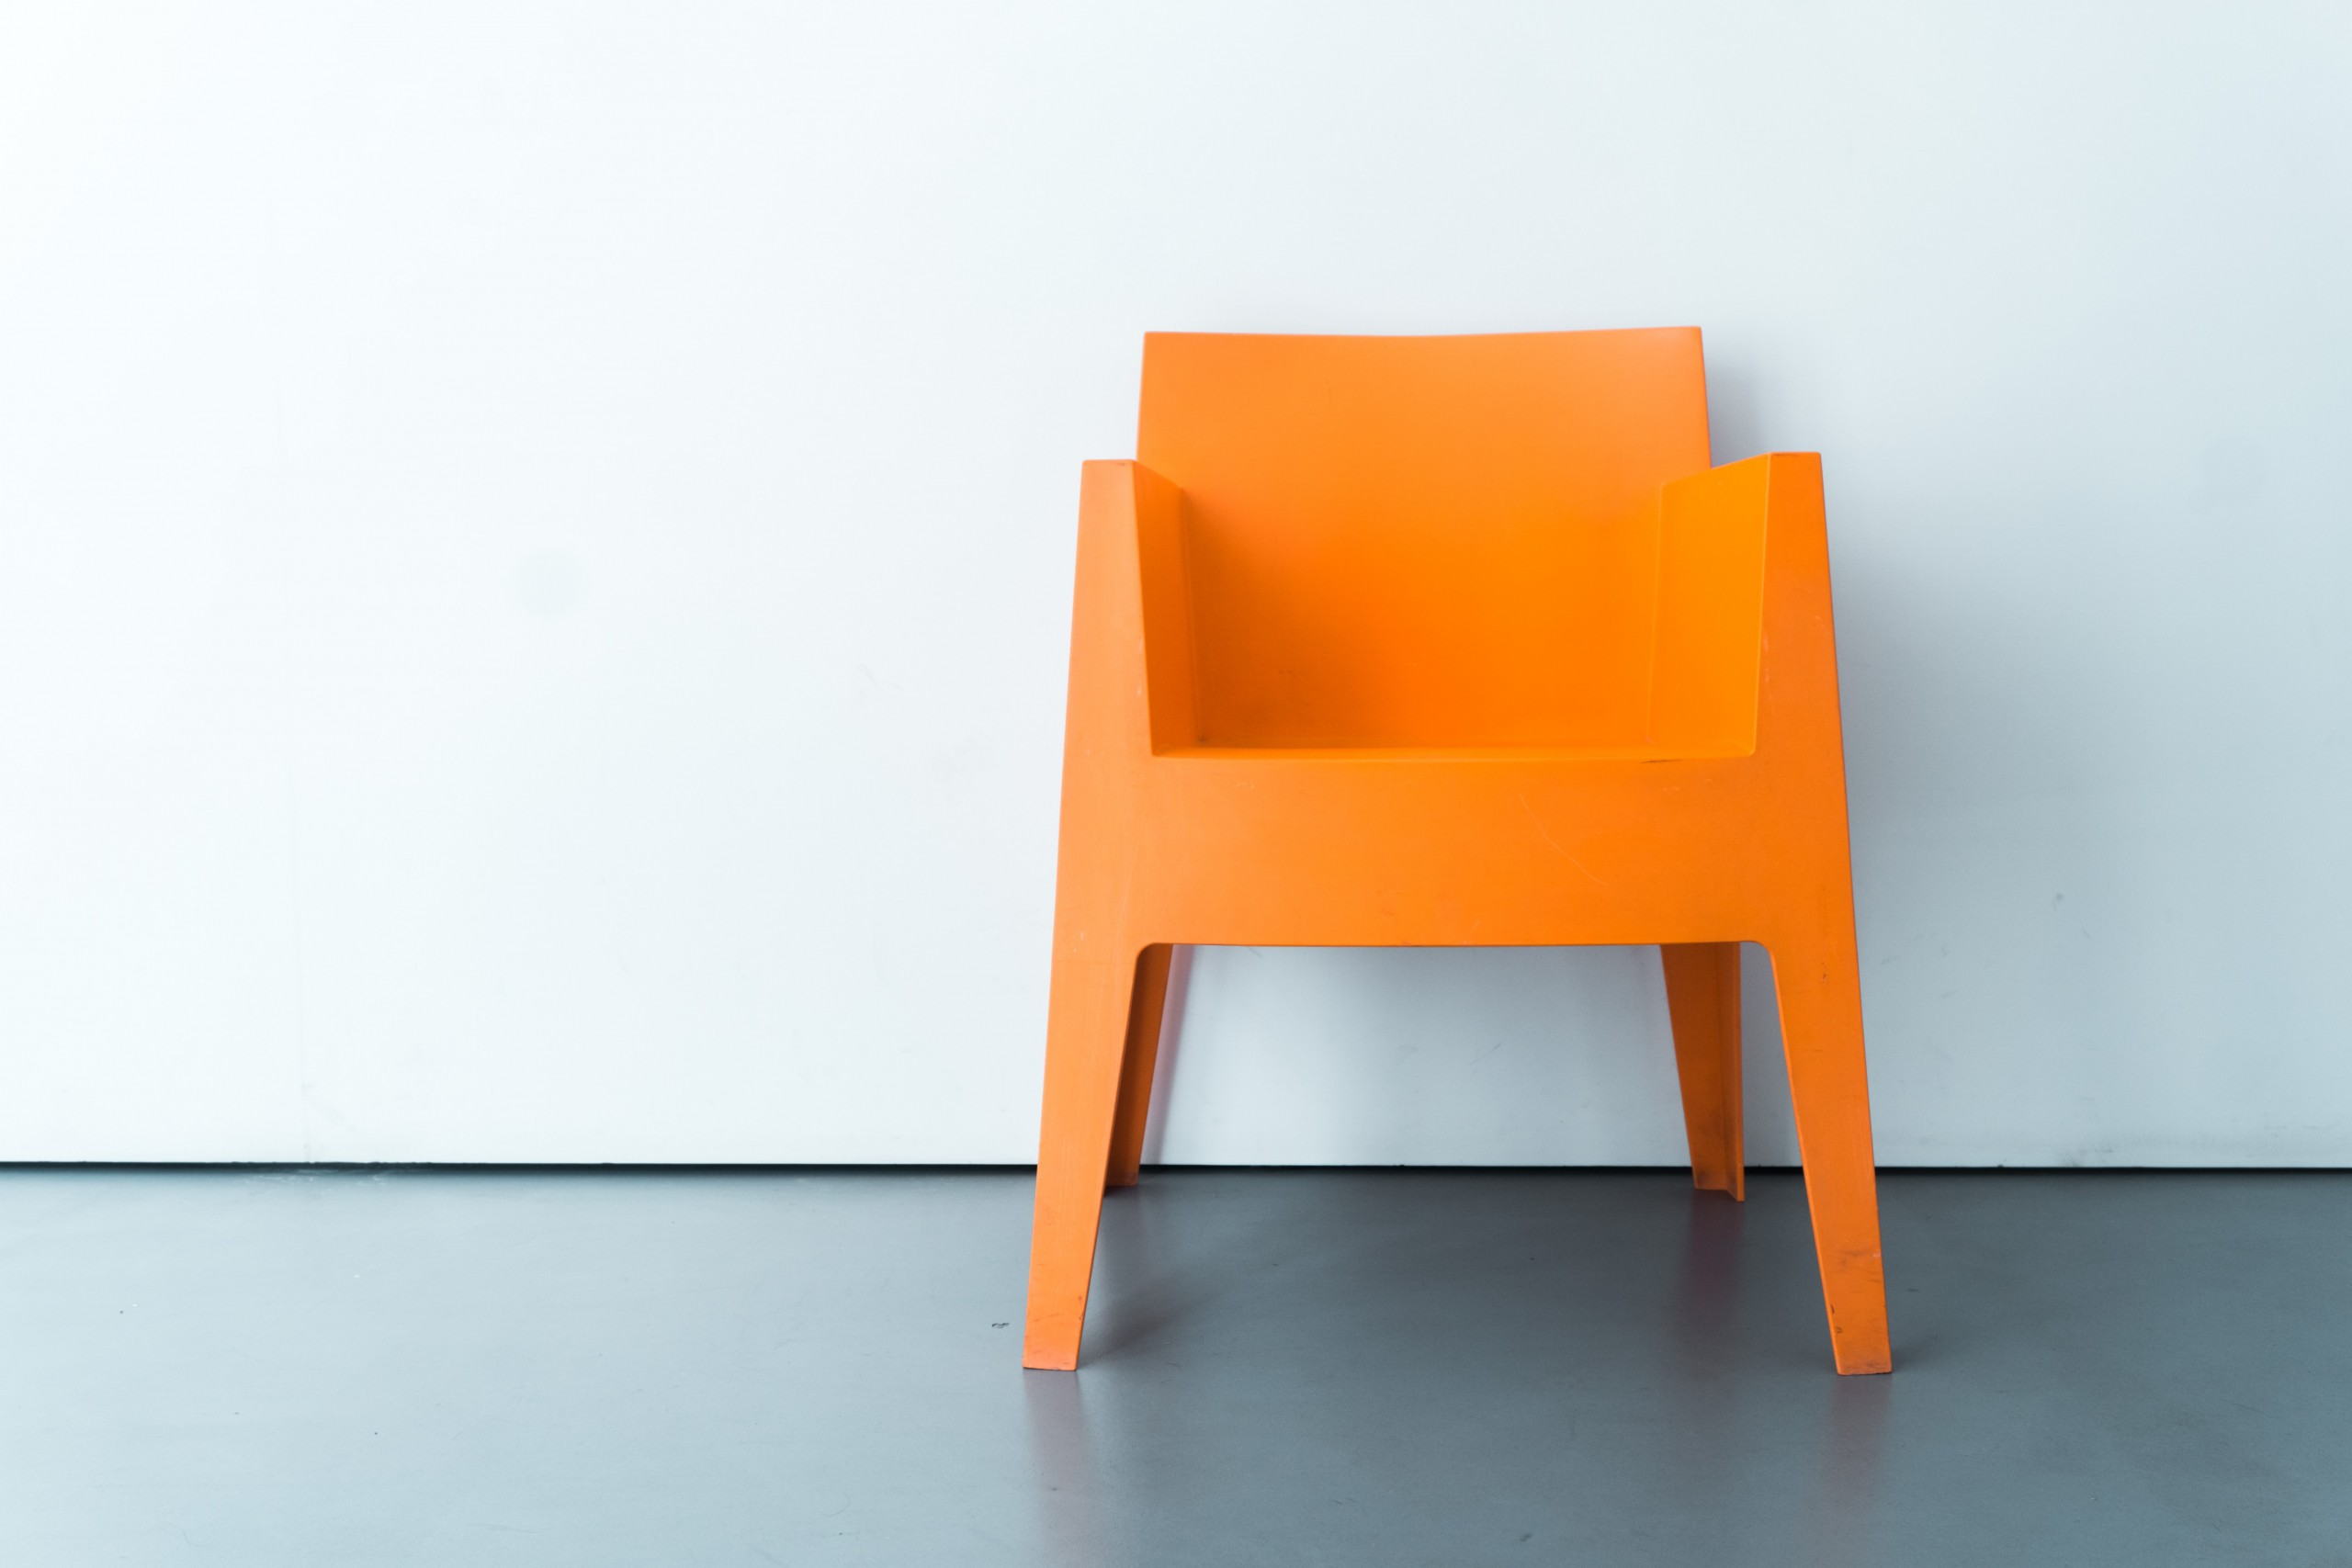 Photo of an orange chair